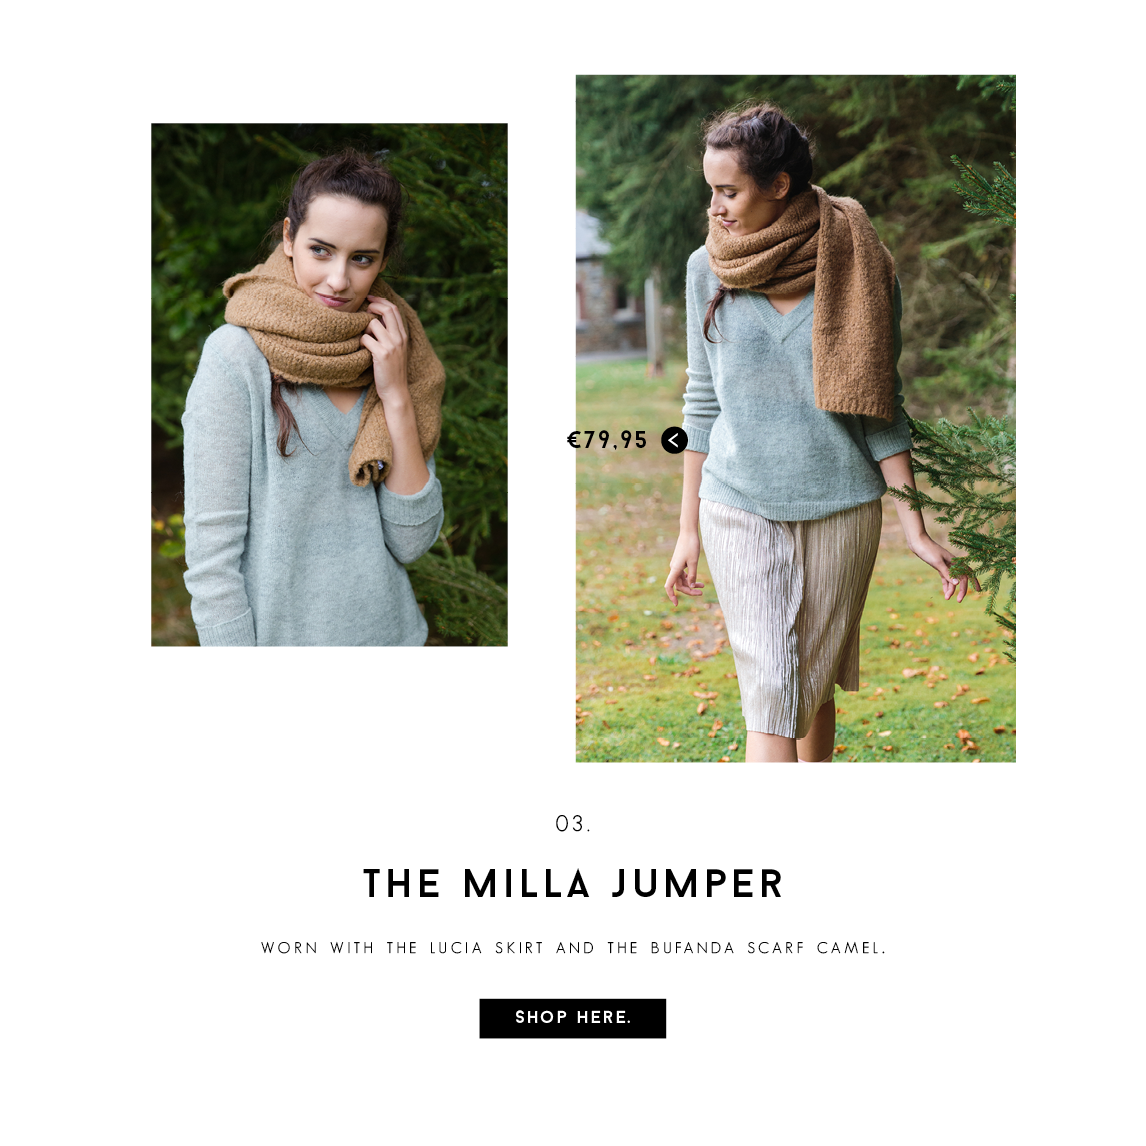 http://shoplily.be/collections/fall-getaway/products/milla-jumper-gray-mist?variant=32323813127